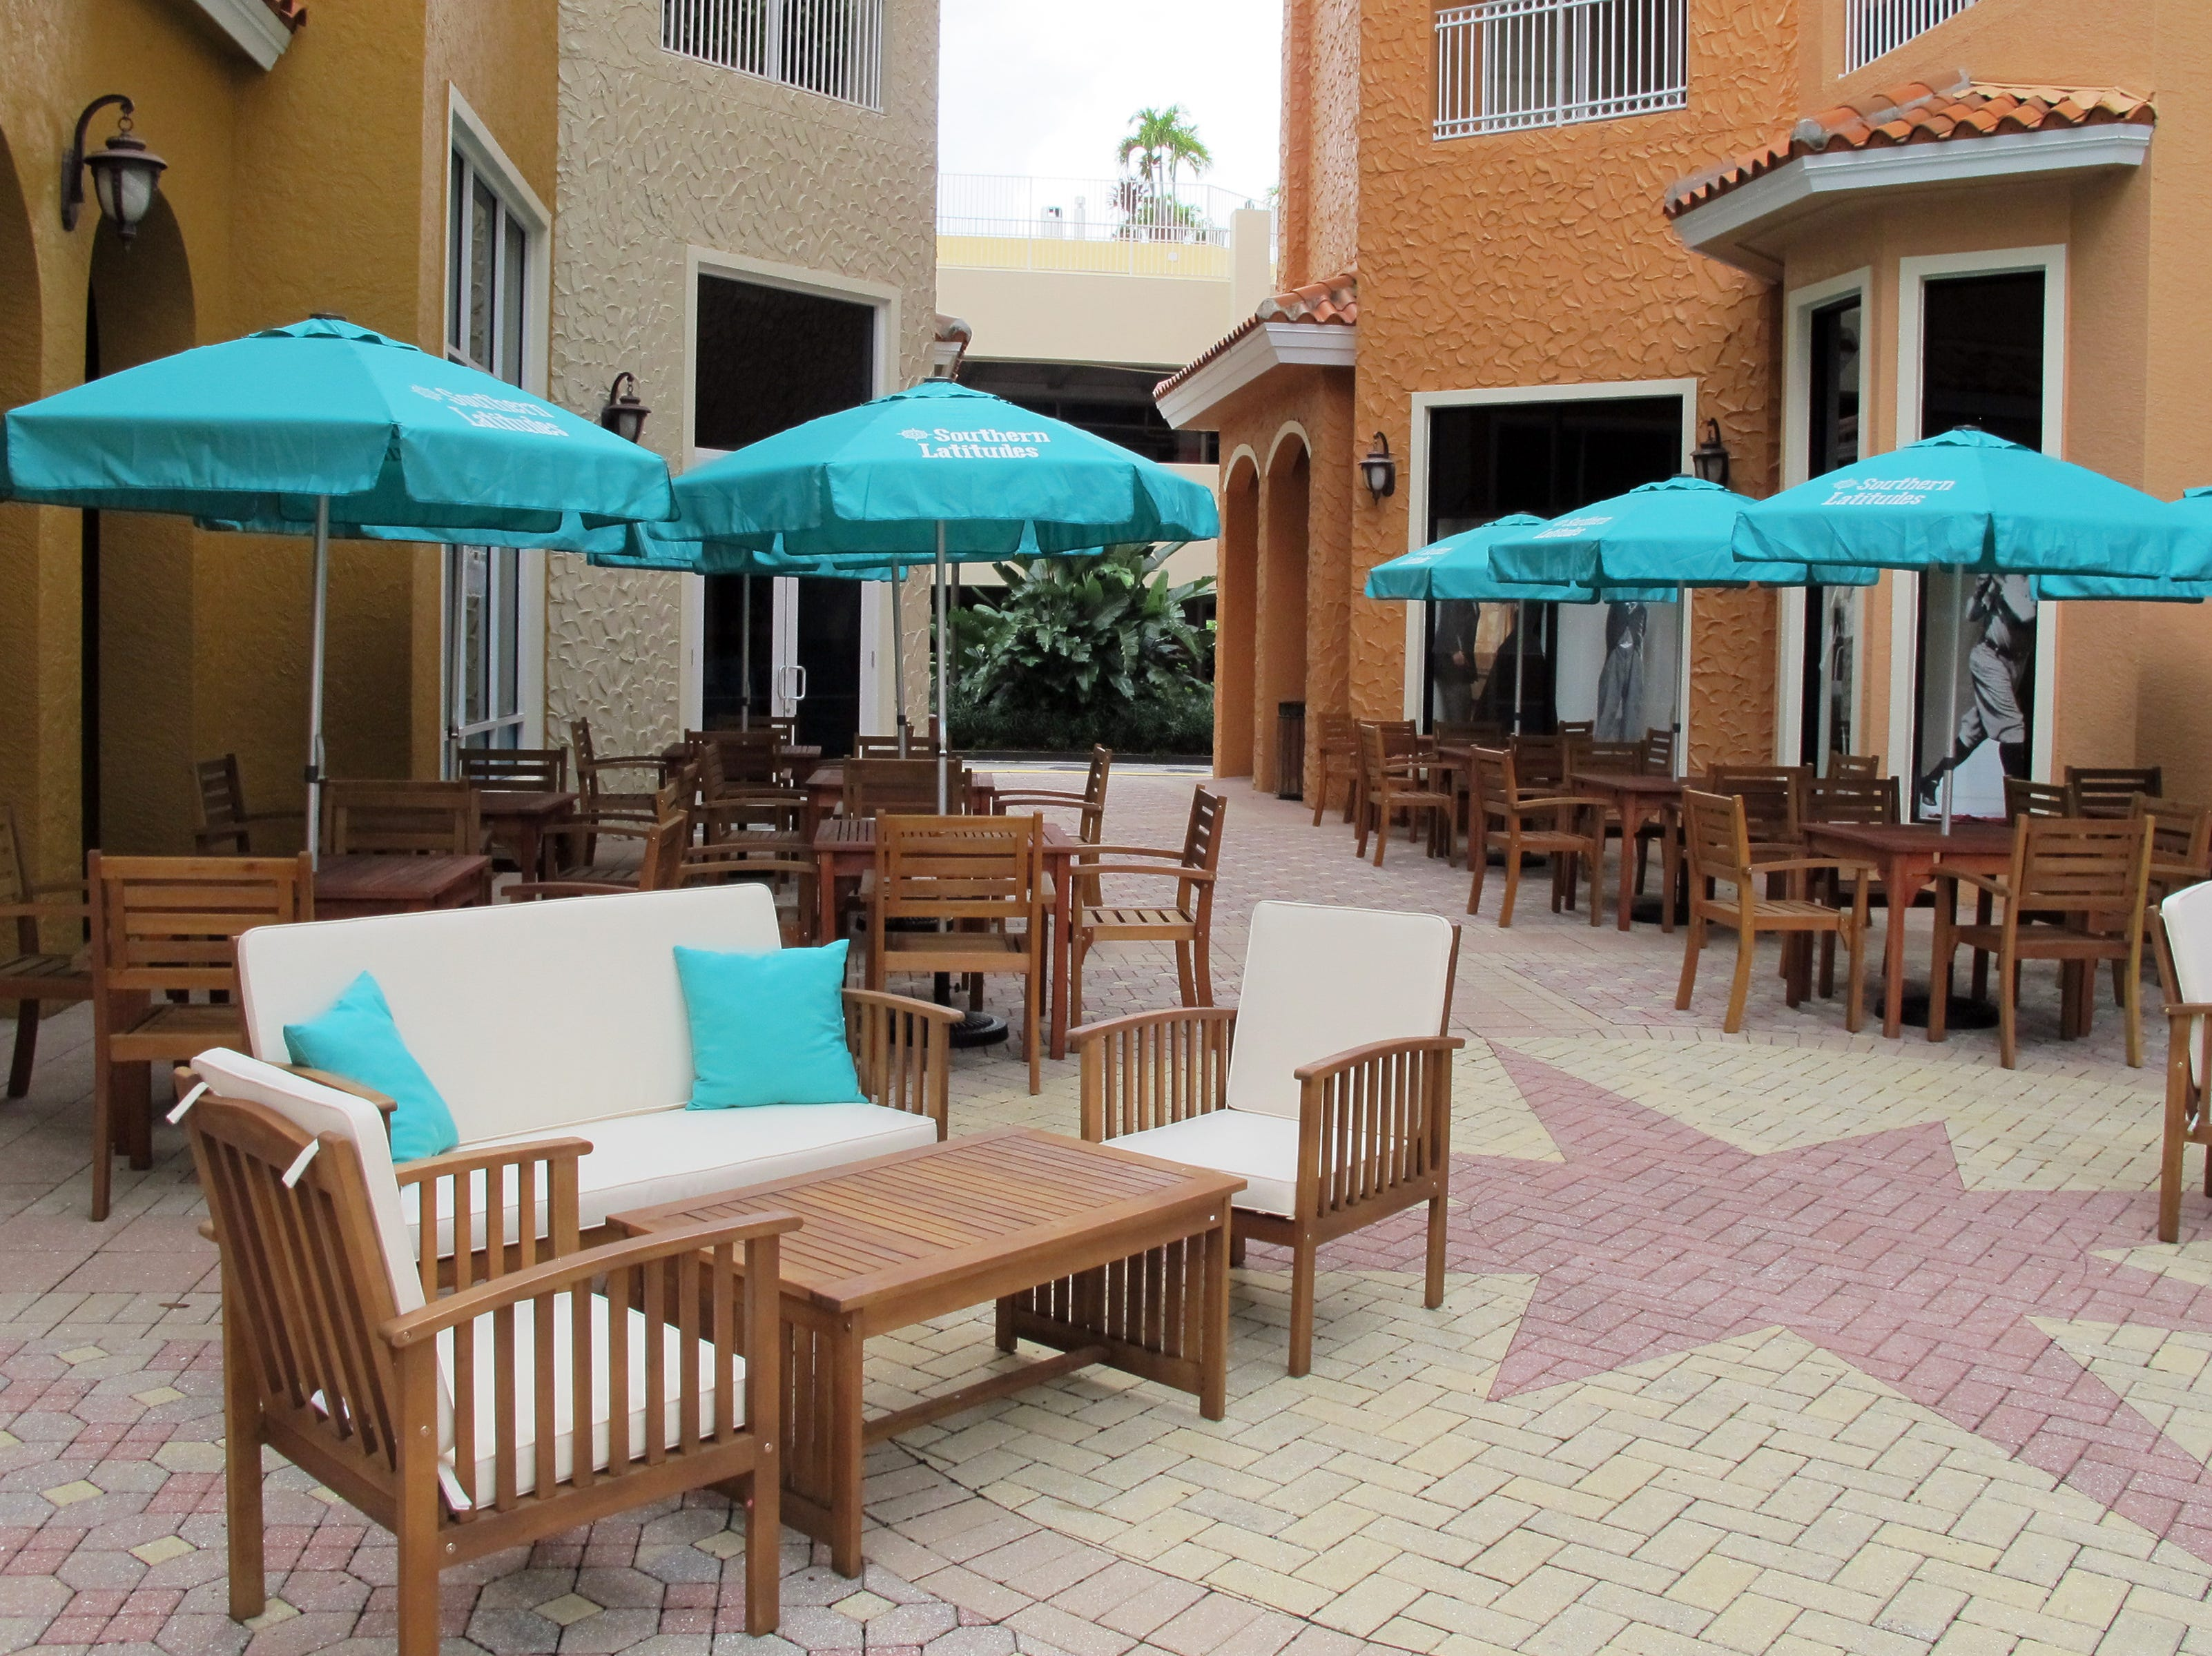 Southern Latitudes Brewpub & Grub has indoor and outdoor seating at Bayfront in Naples.